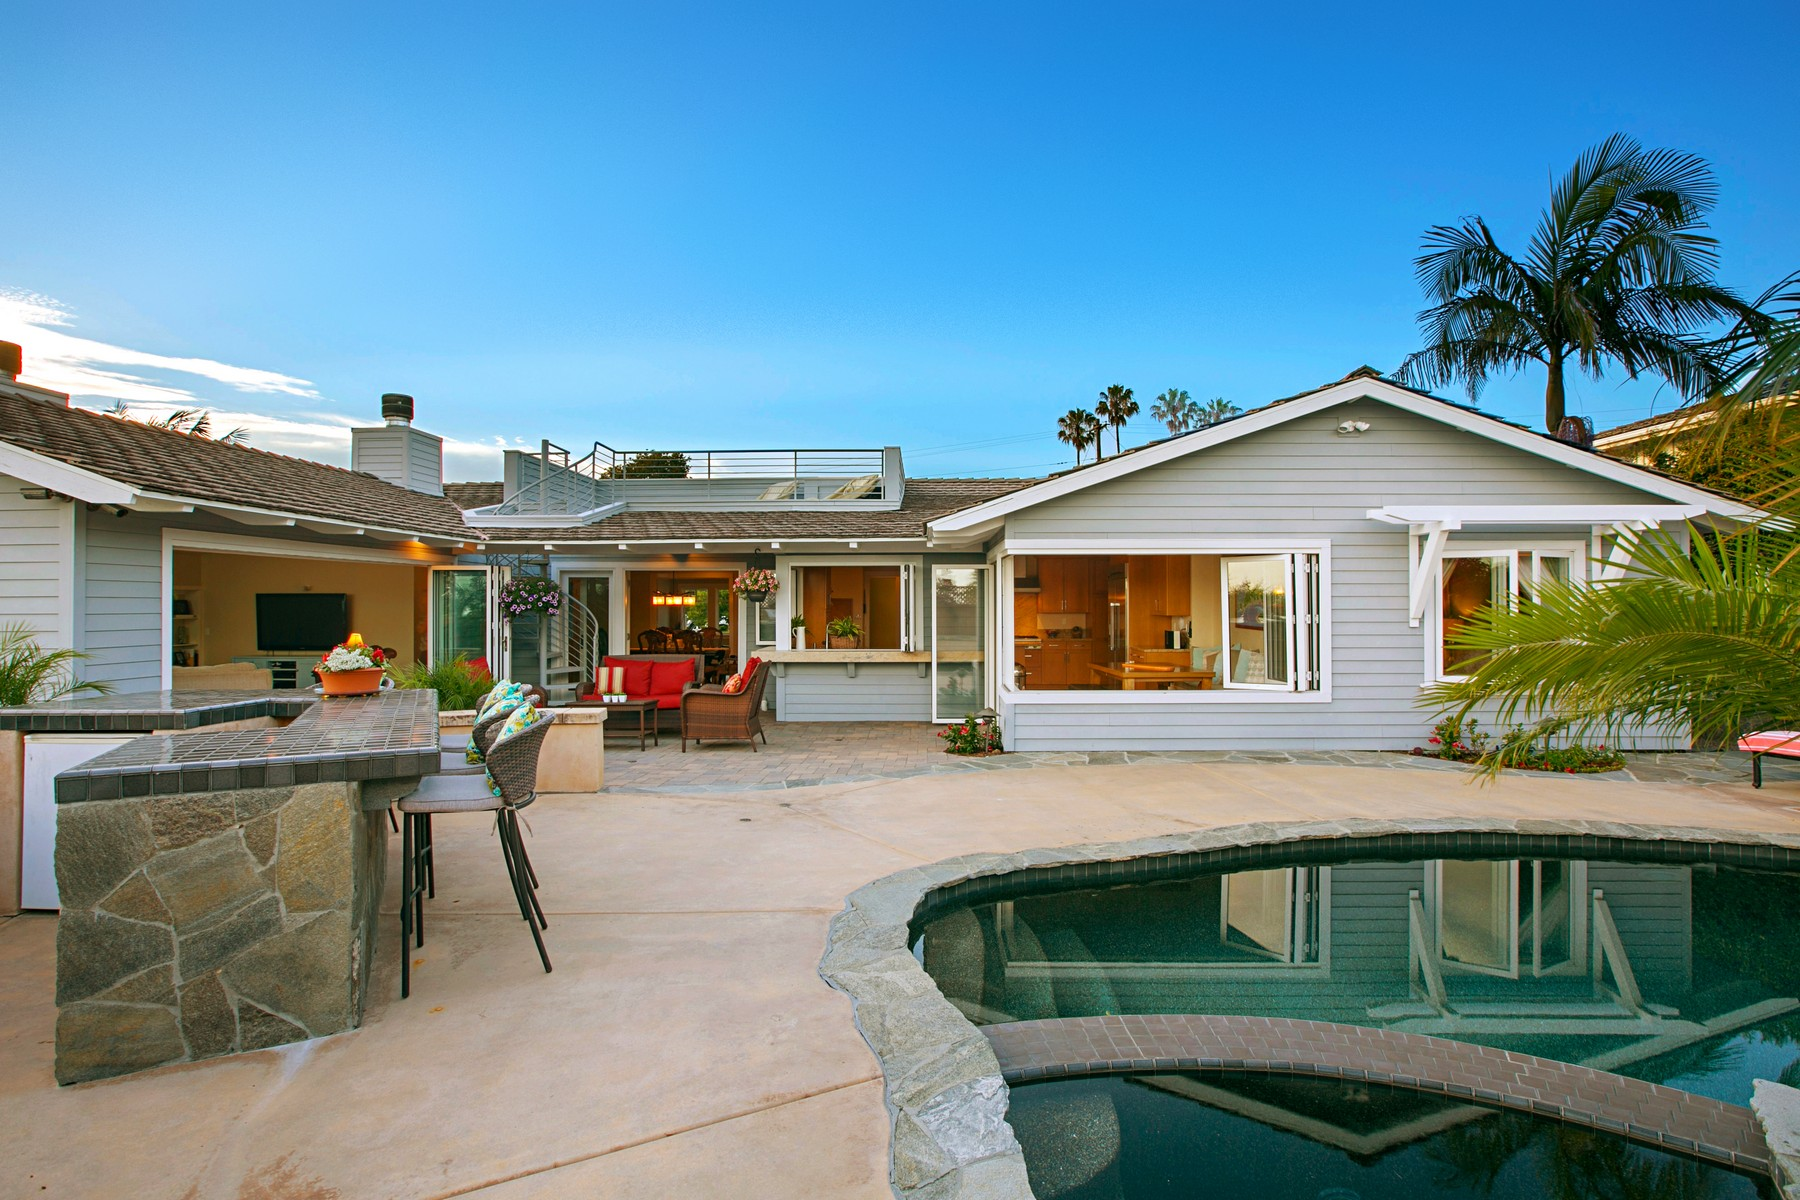 Additional photo for property listing at 1035 Newkirk Drive  La Jolla, California 92037 Estados Unidos